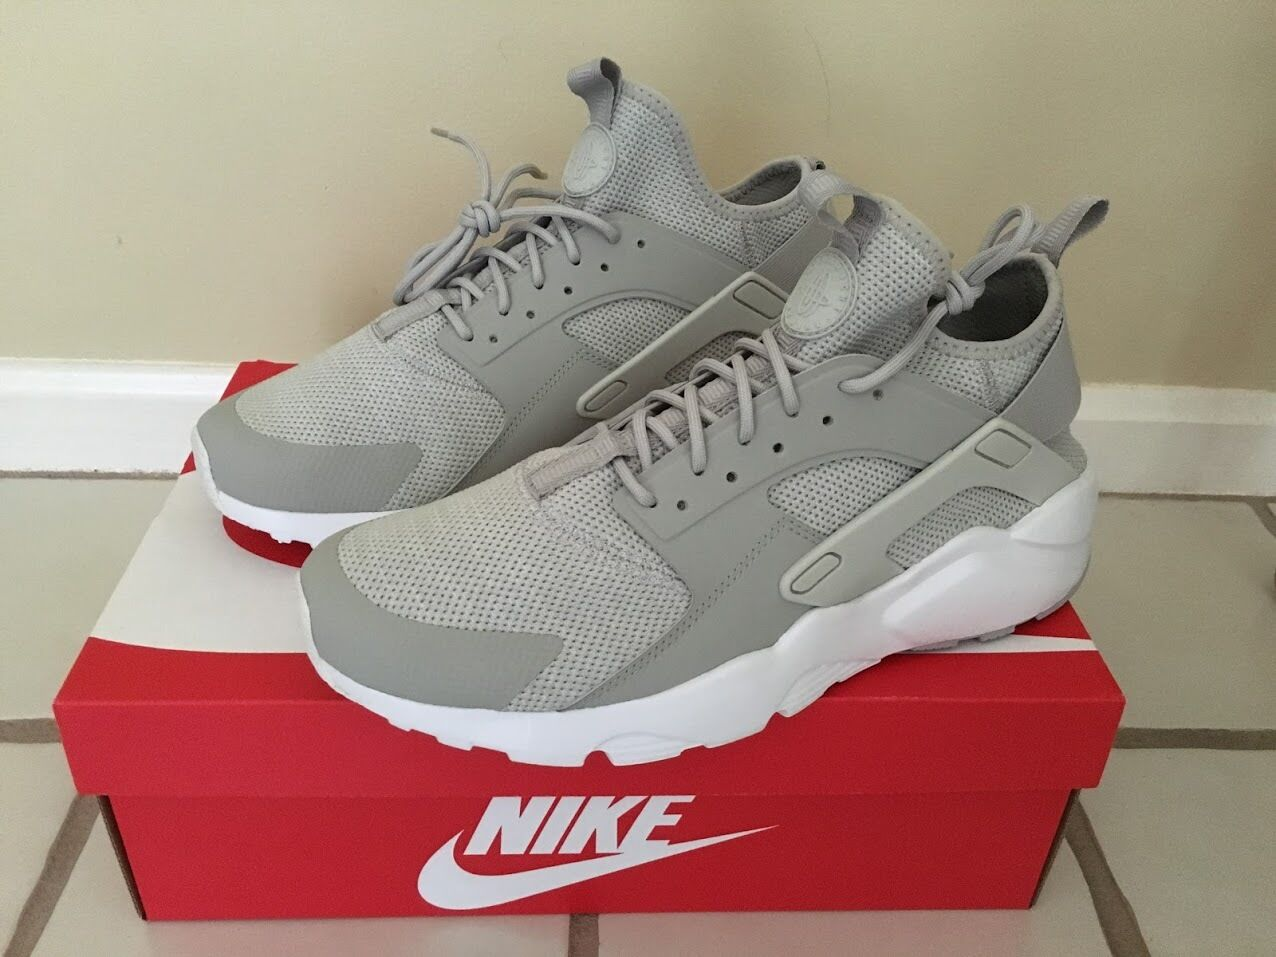 NIKE AIR HUARACHE RUN ULTRA SNEAKERS SIZE 11 833147002 BRAND NEW BEST OFFER